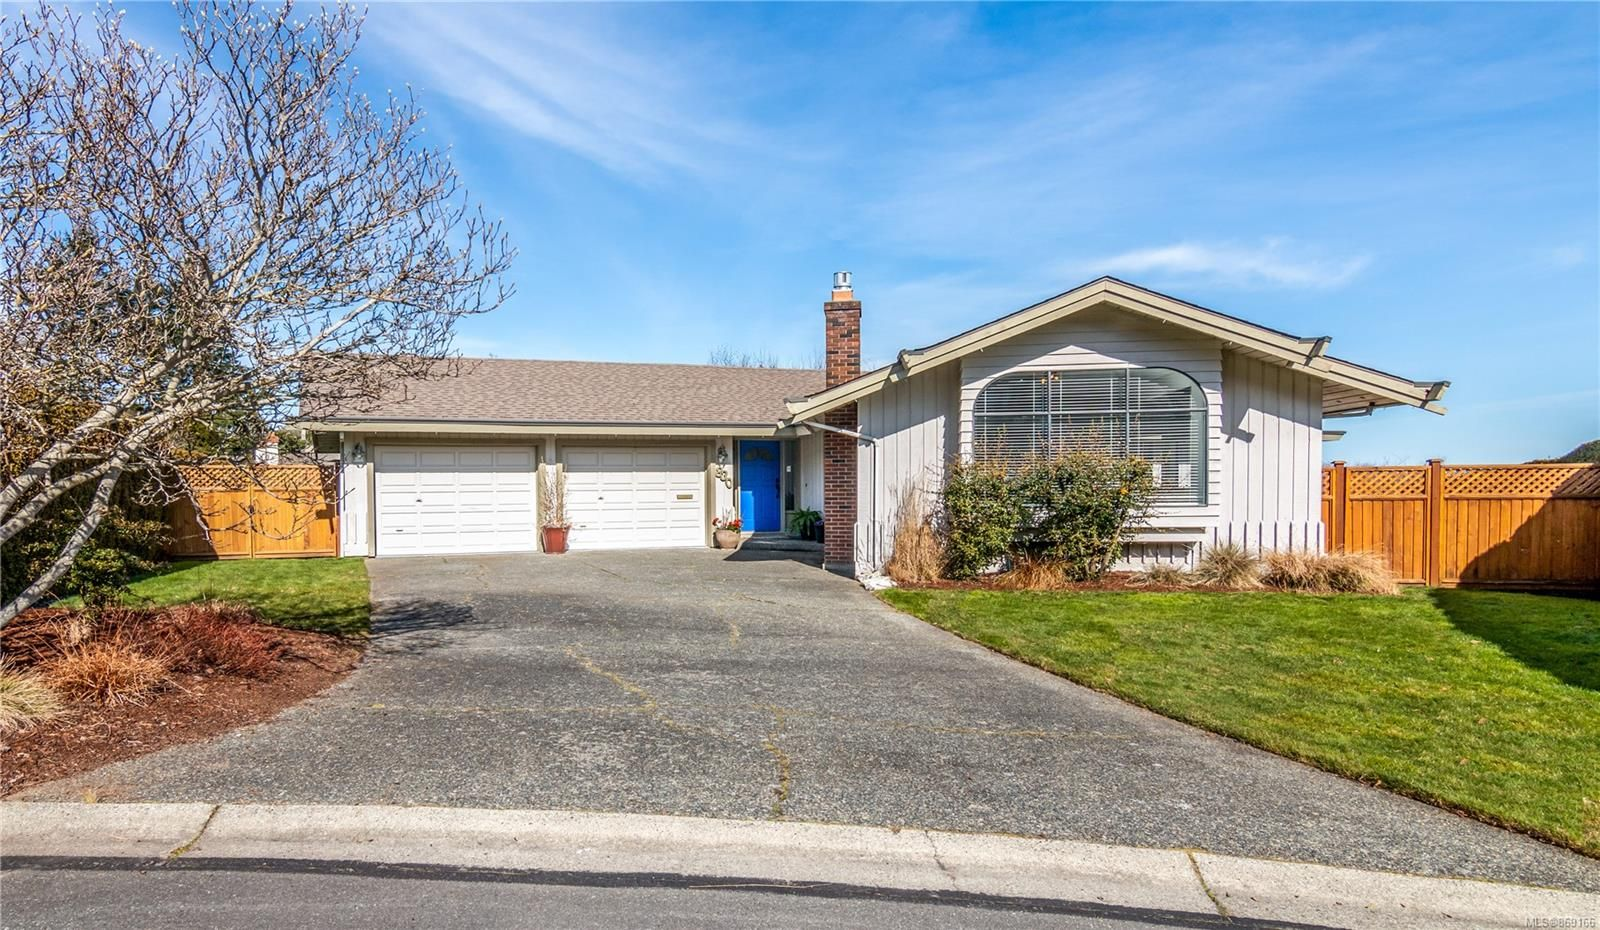 Main Photo: 830 Gulfview Pl in : SE Cordova Bay House for sale (Saanich East)  : MLS®# 869166